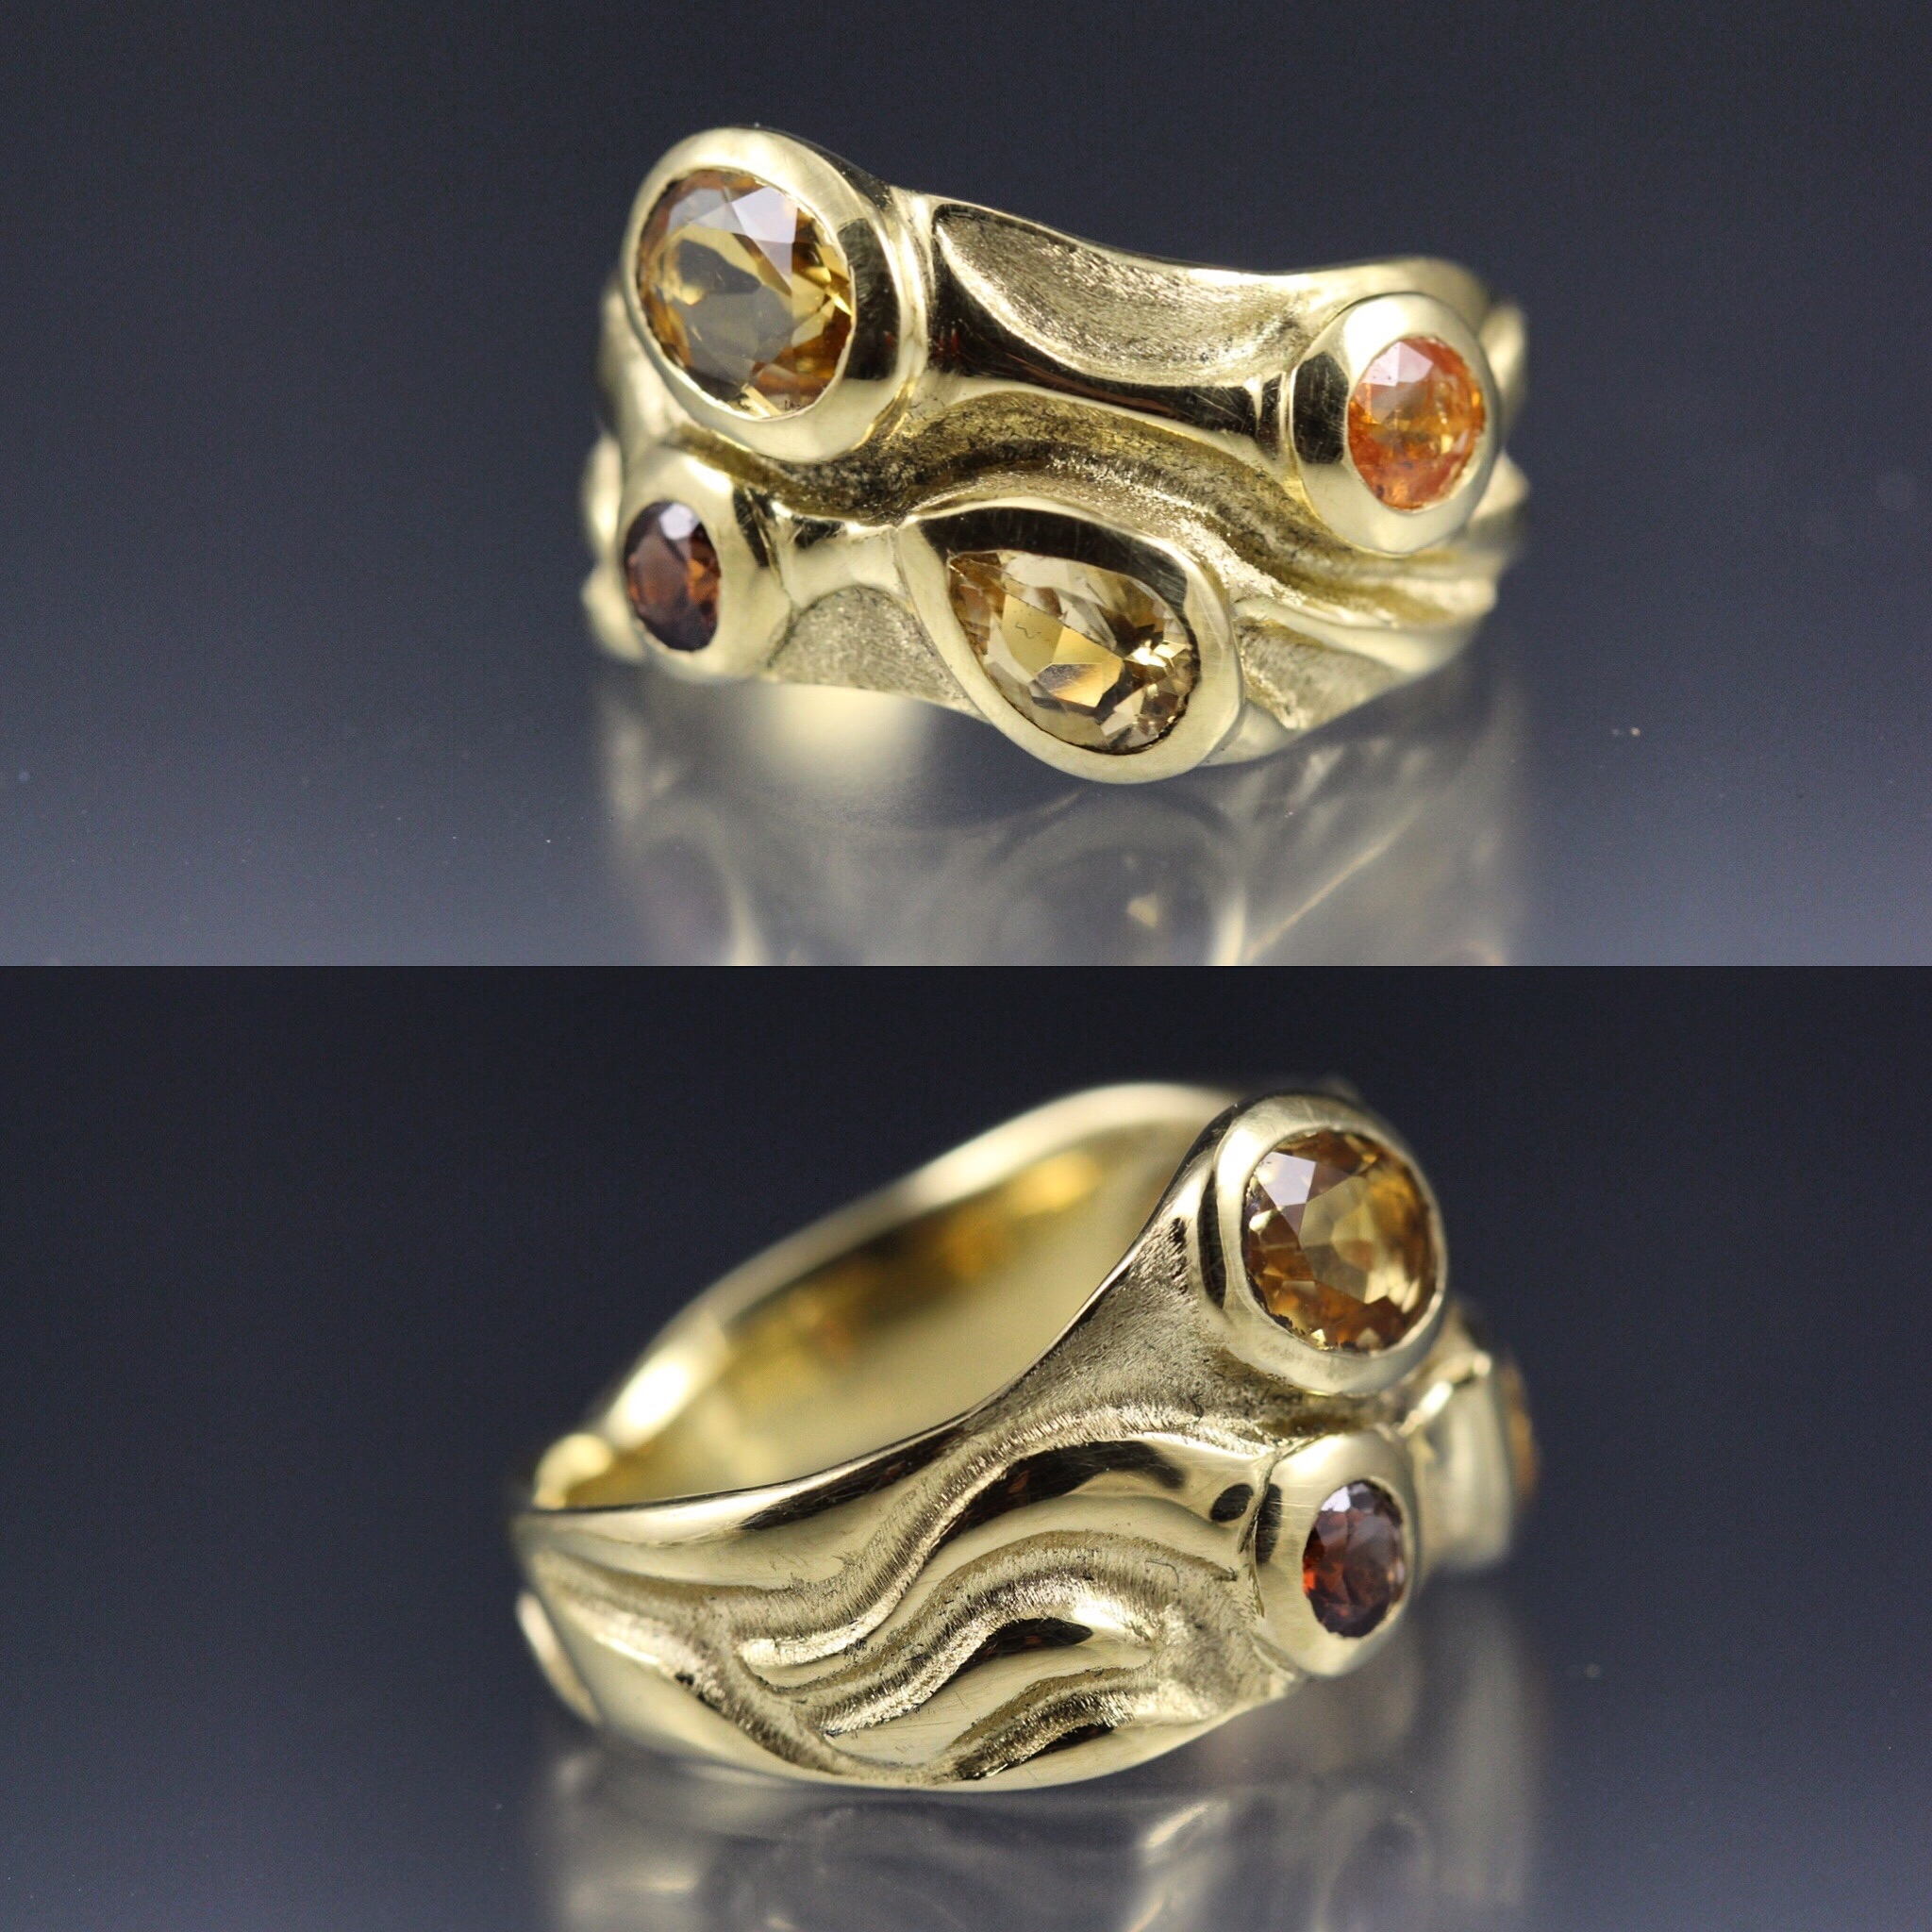 18k gold custom made ring using customer's heirloom stones by Danielle Miller Jewelry